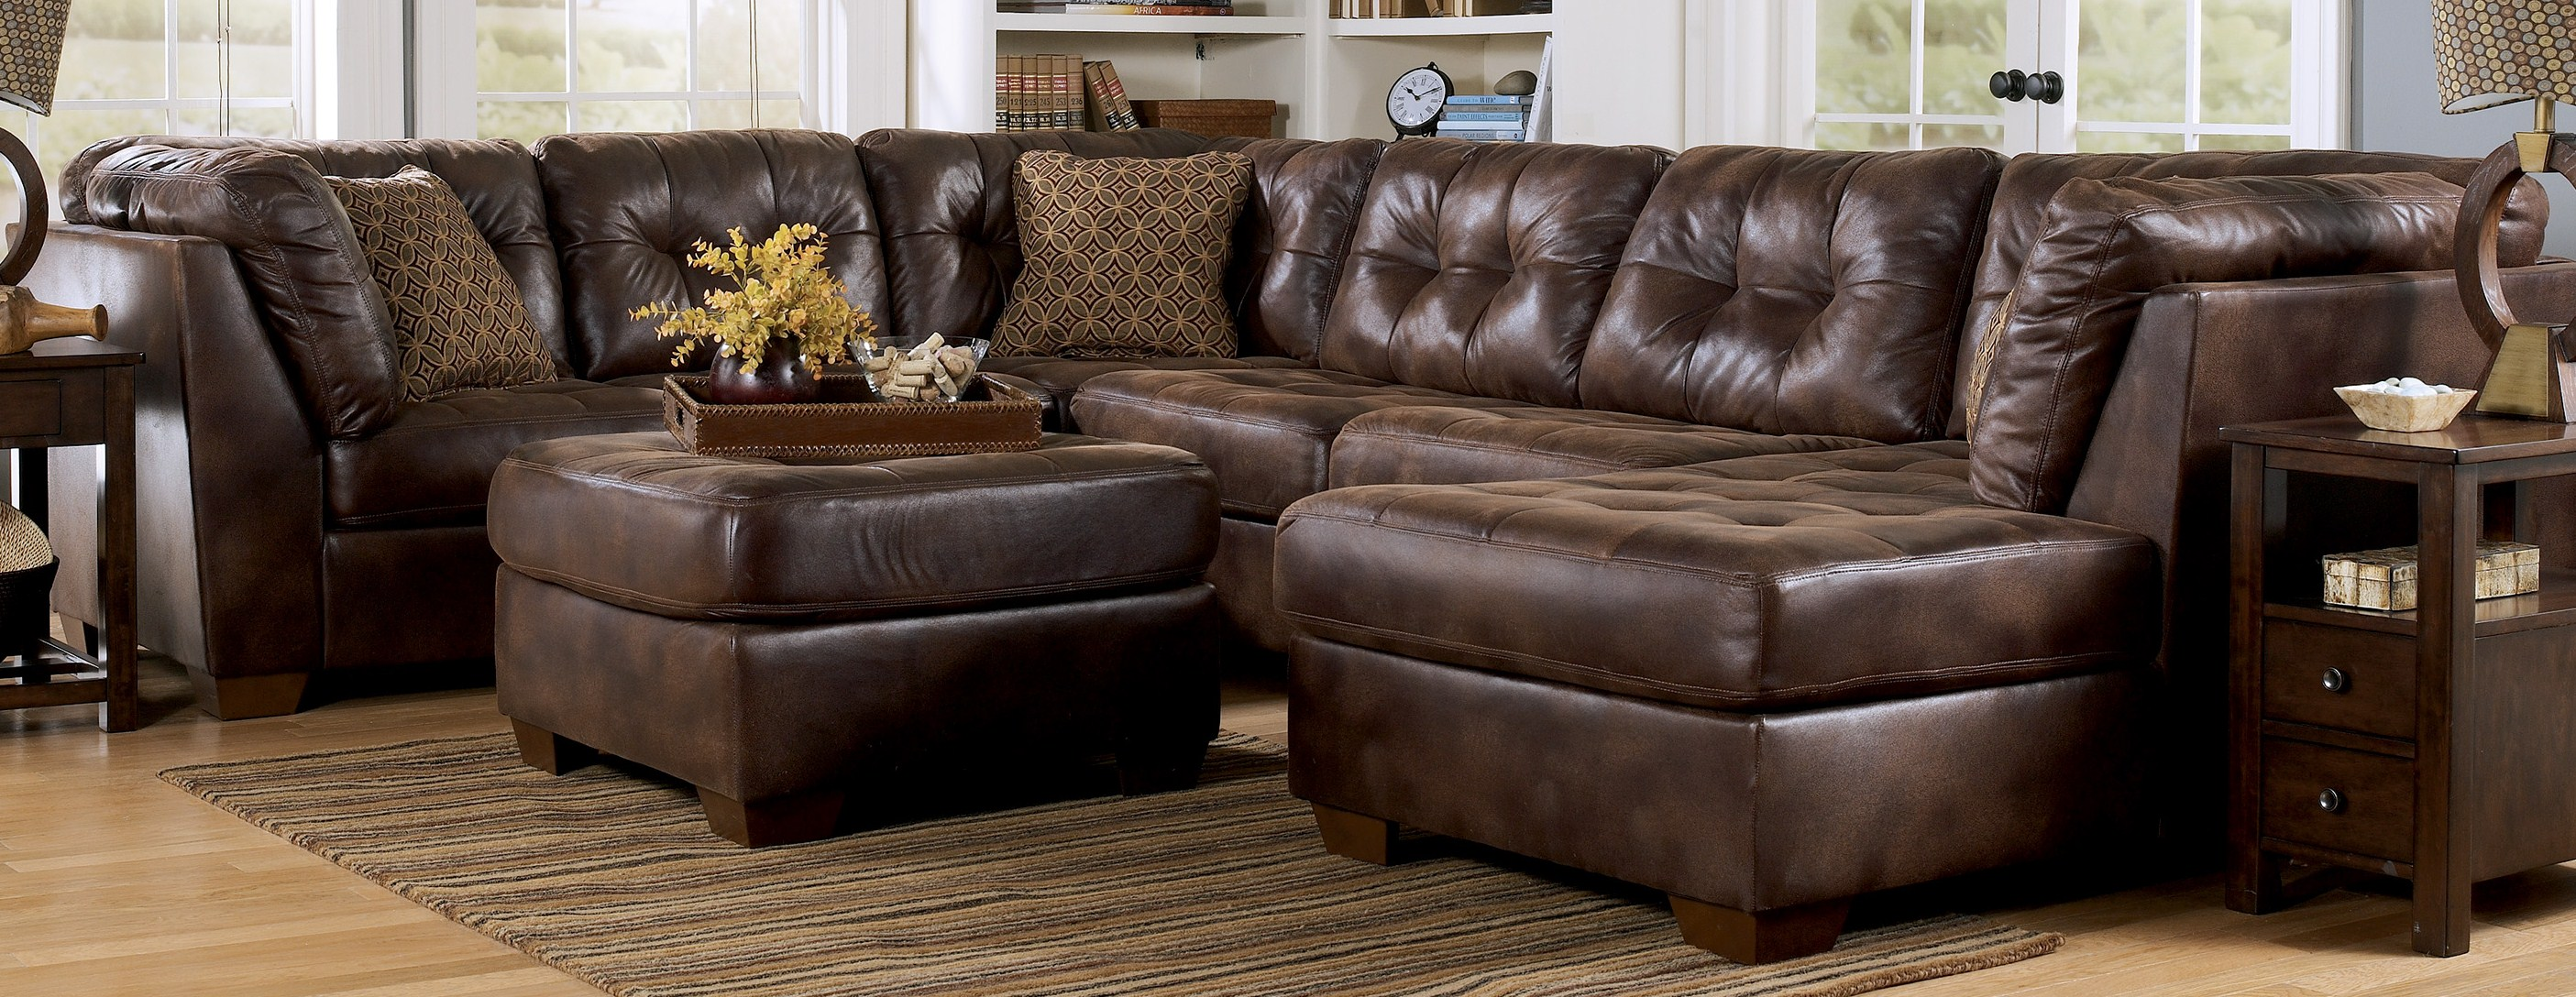 Brown Leather Sectional Sleeper Sofa Plus Ottoman On Brown Carpet For Living Room Decor Ideas